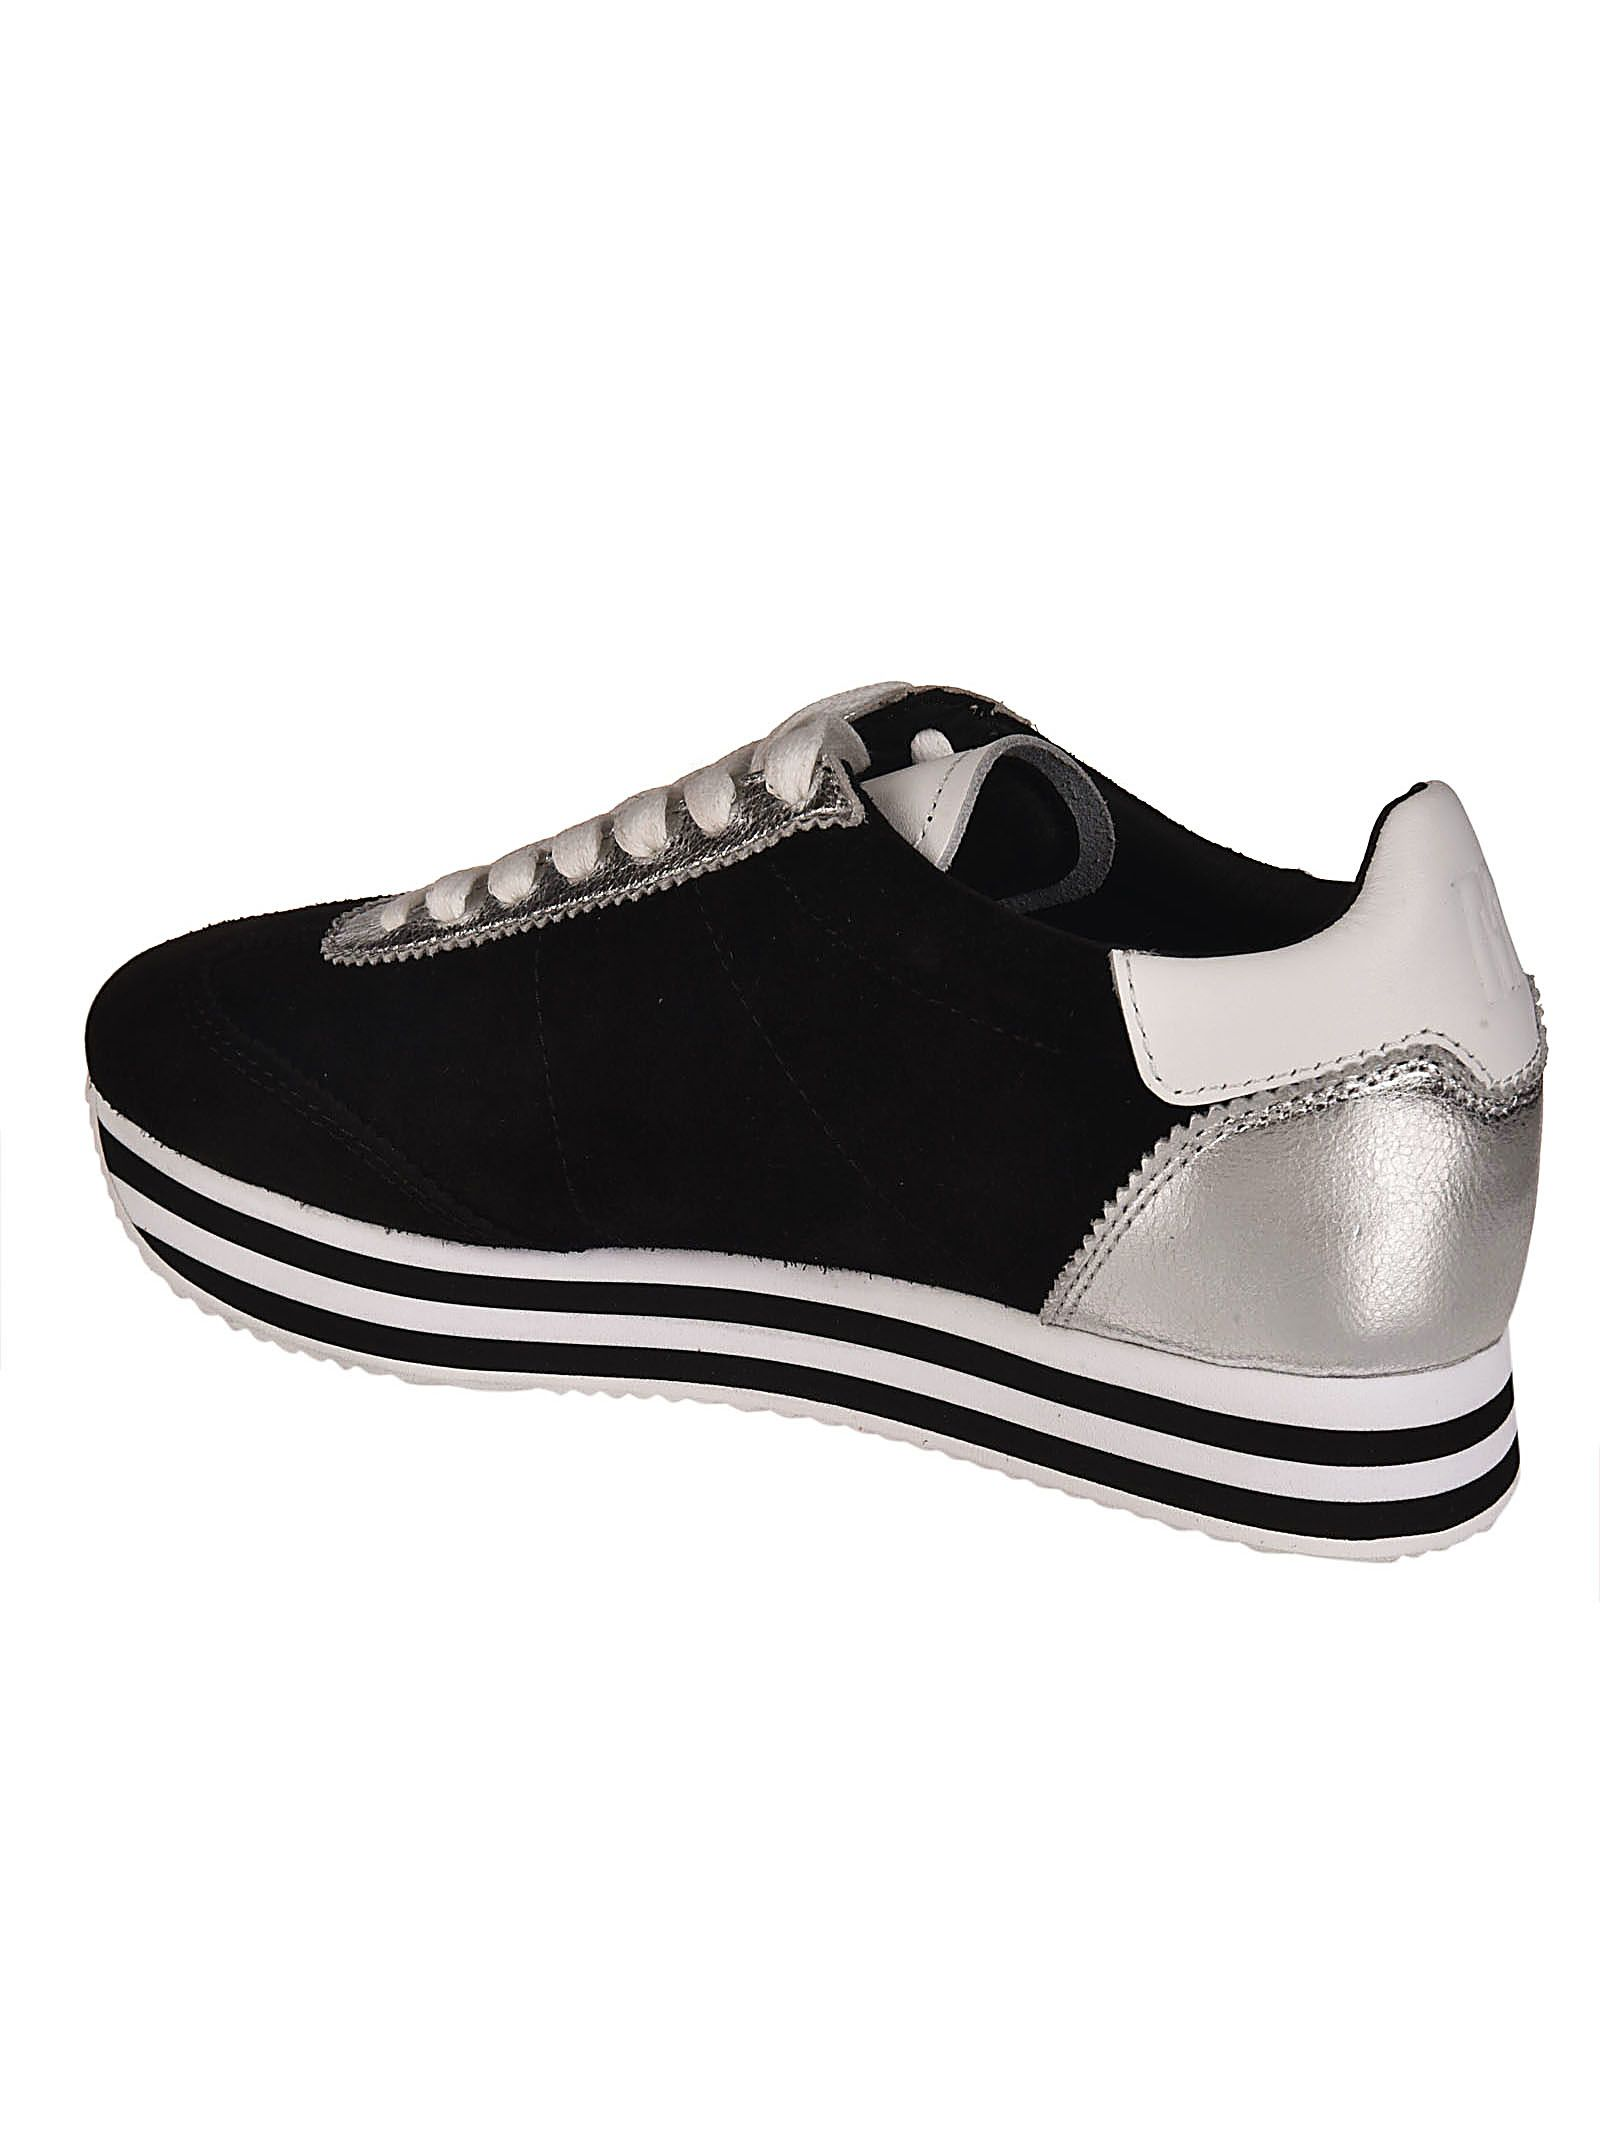 Collections Cheap Price Pick A Best Online Susanna sneakers - Black Rebecca Minkoff Clearance Supply O6WZUtWoL